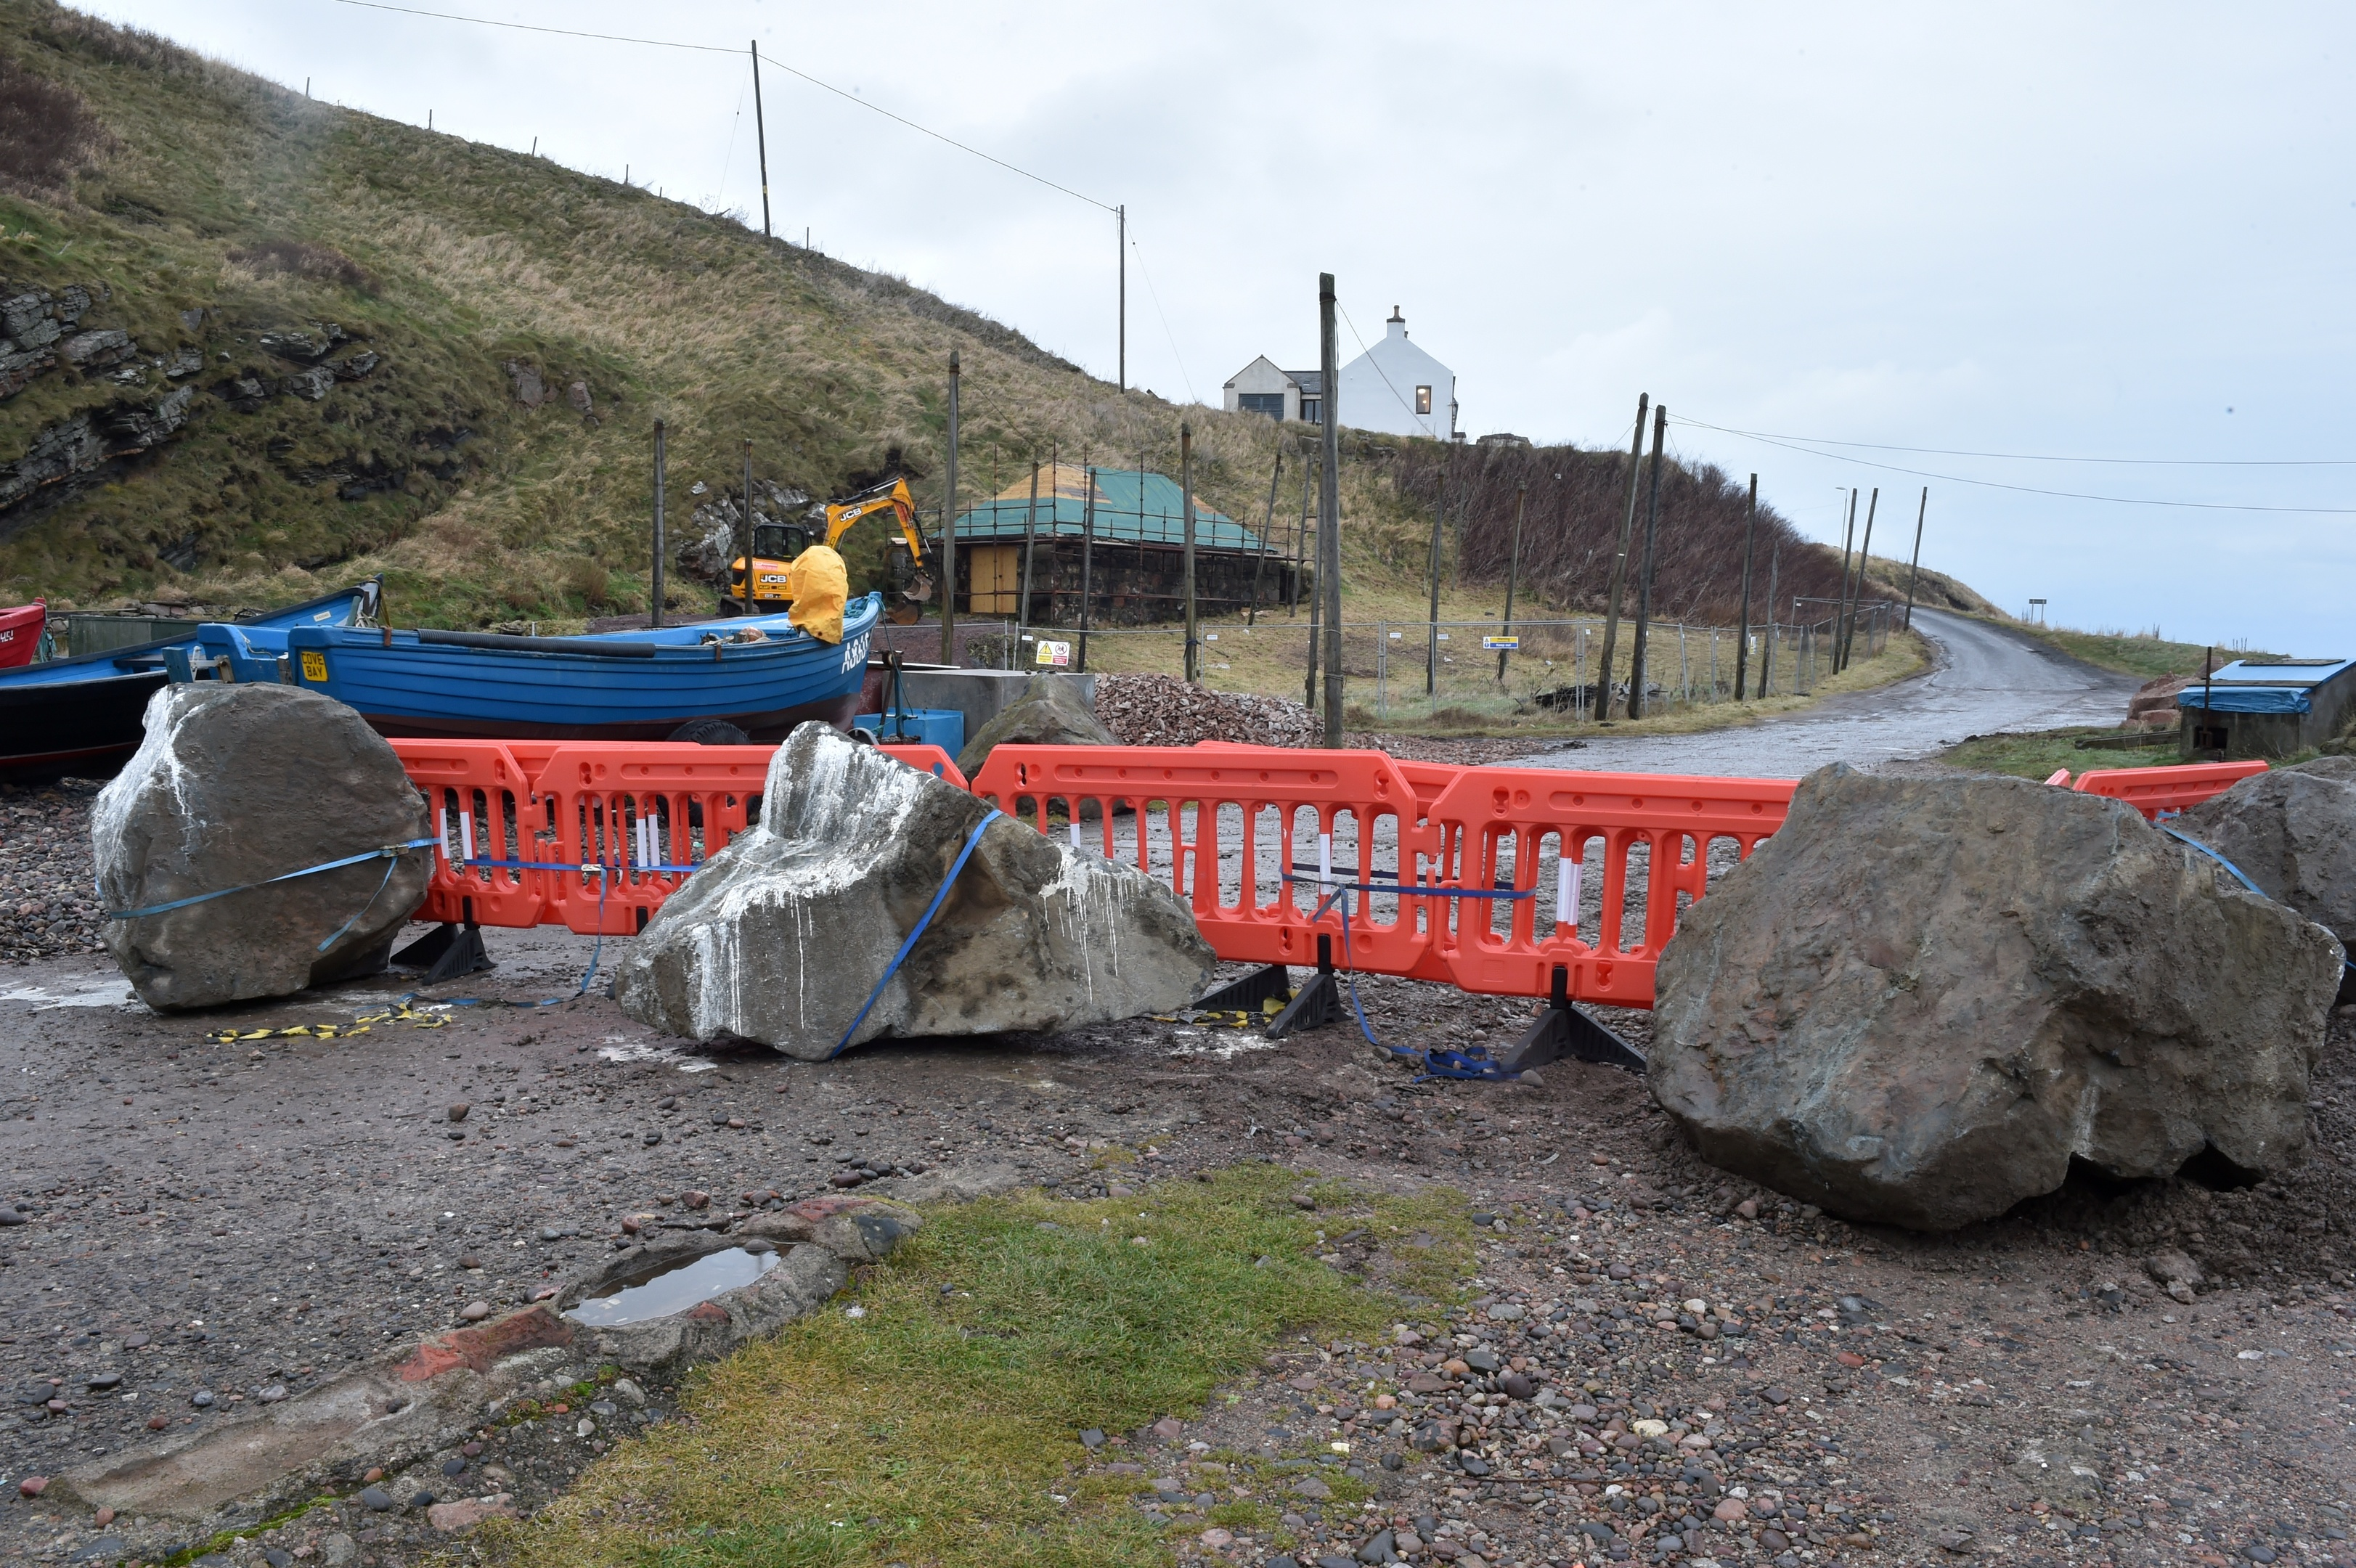 no access:  The fishermen plan a legal fight after the eviction notices and  boulders were allegedly put in place by the landowner.